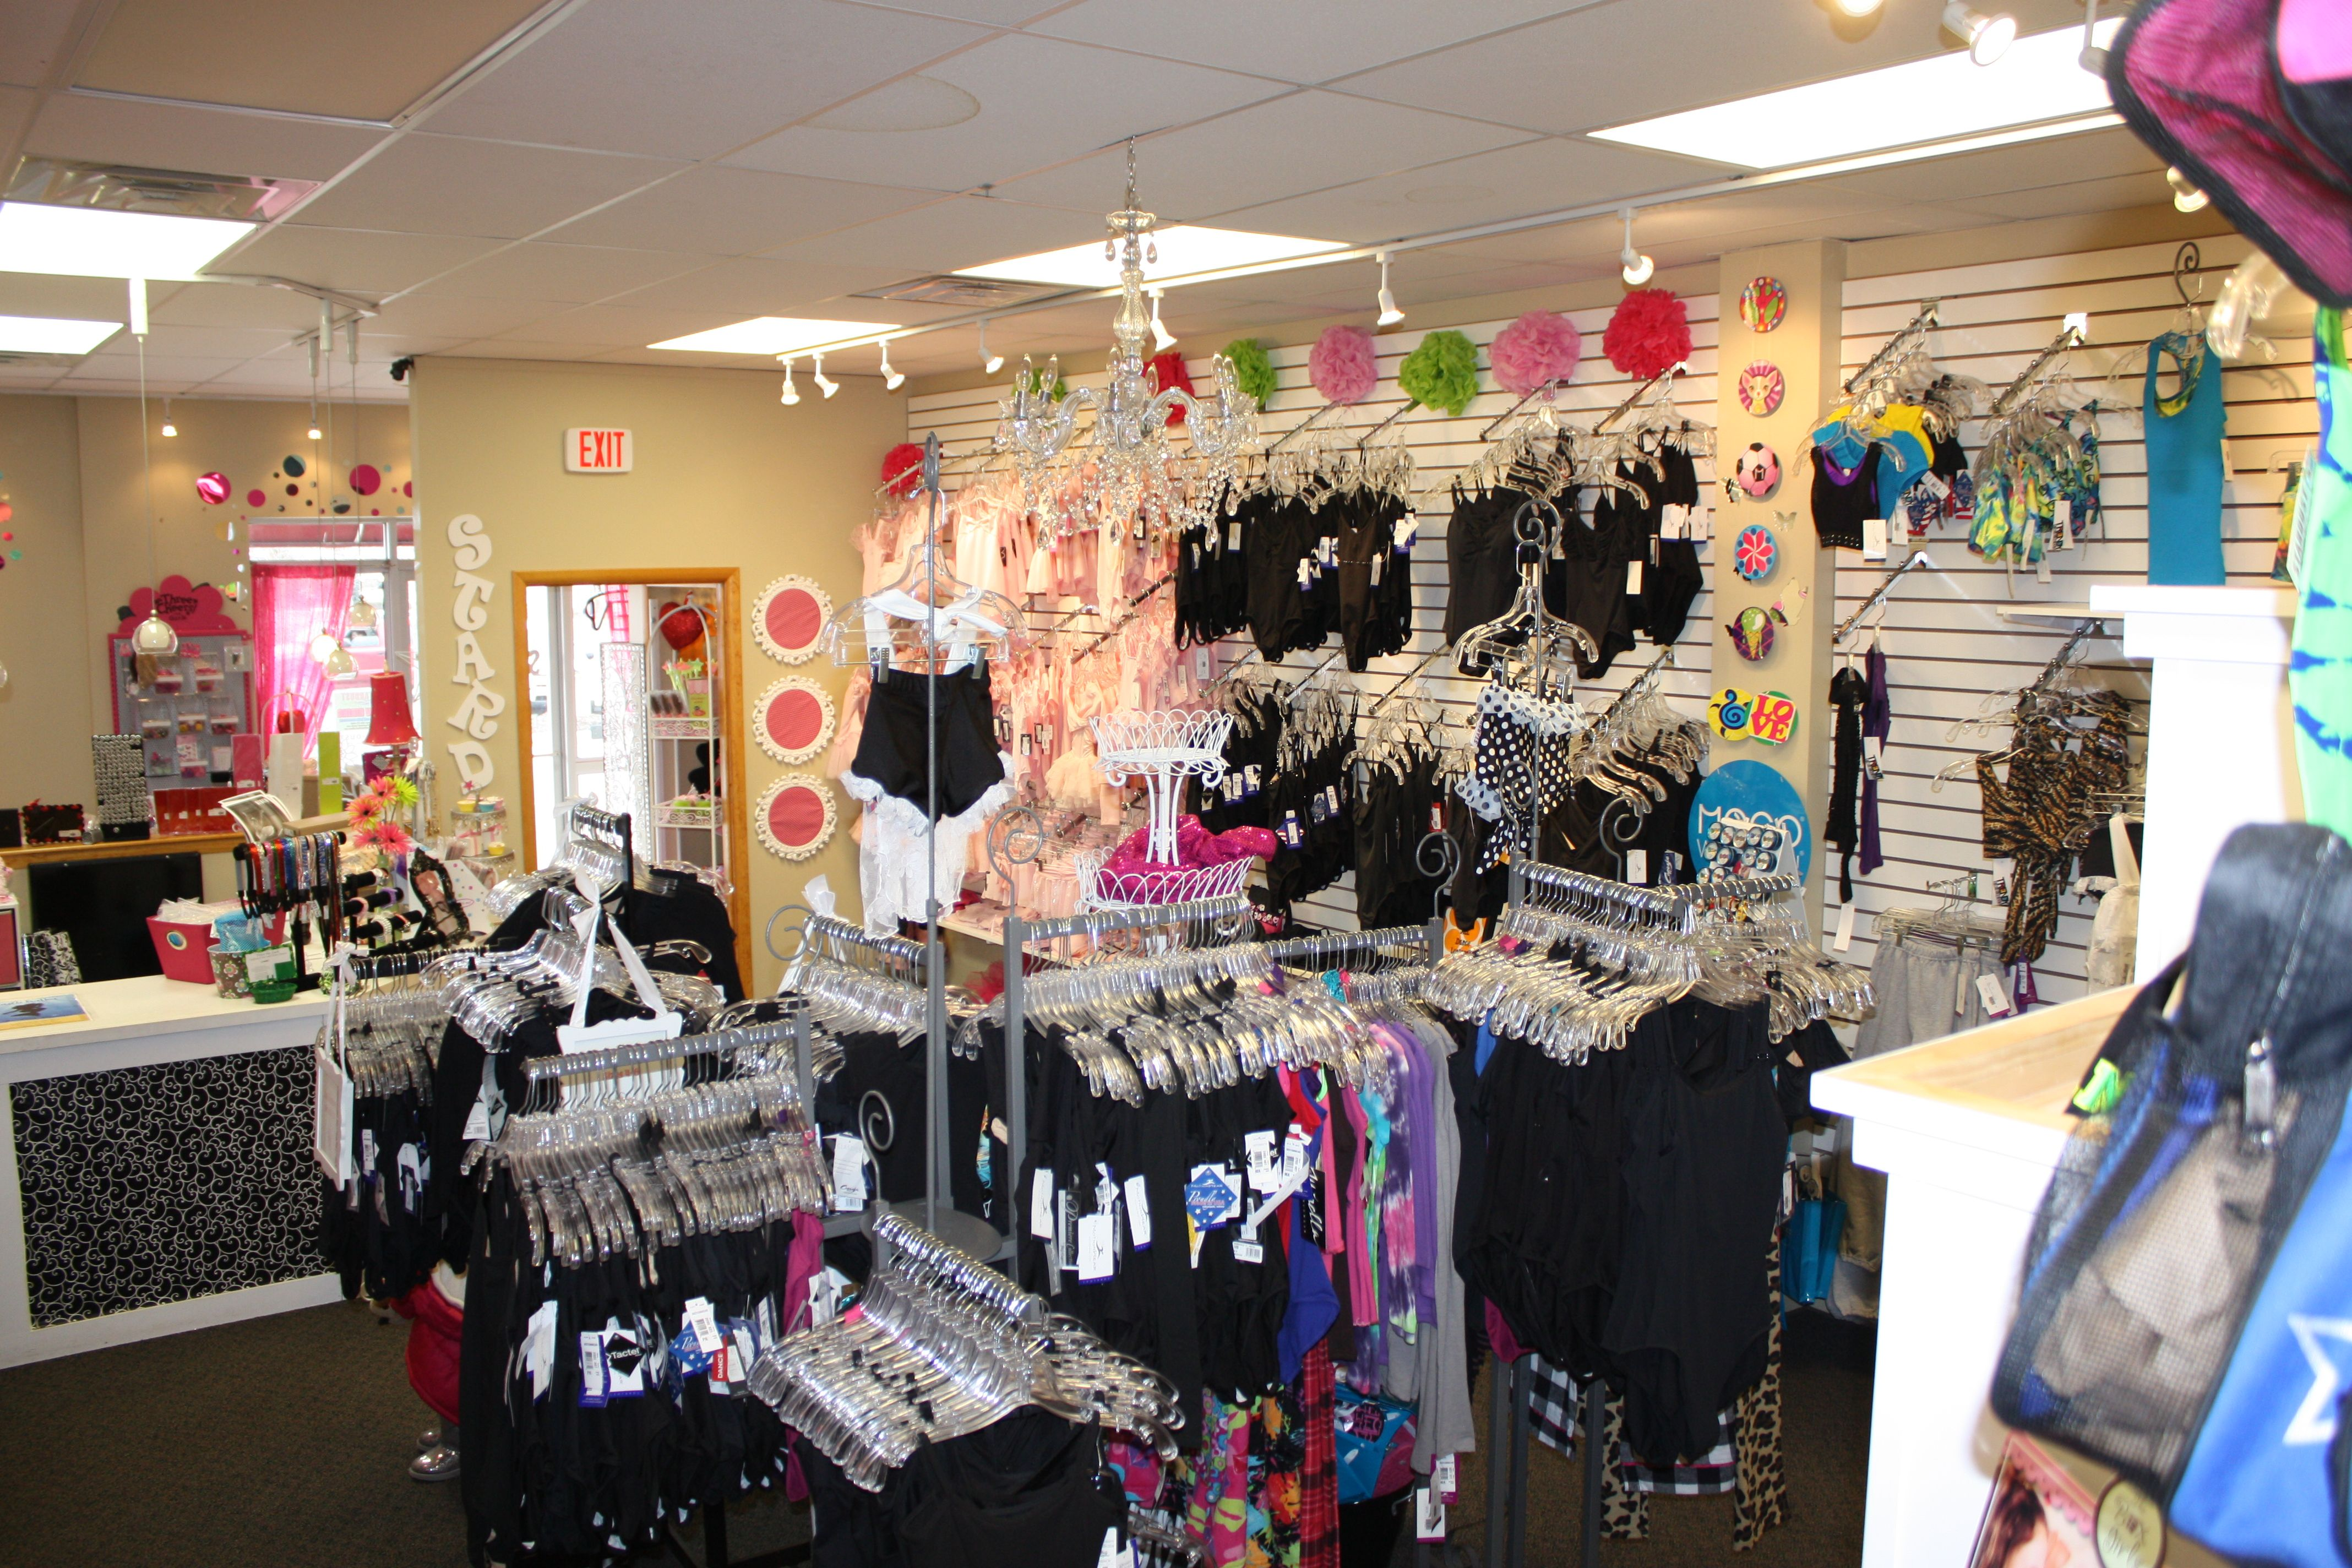 Inside Our Store For Girls You Will Find Treasures Of Dance Wear Cheerleading And Gymnastics Apparel Within Cheerleading Outfits Gymnastics Outfits Dance Wear